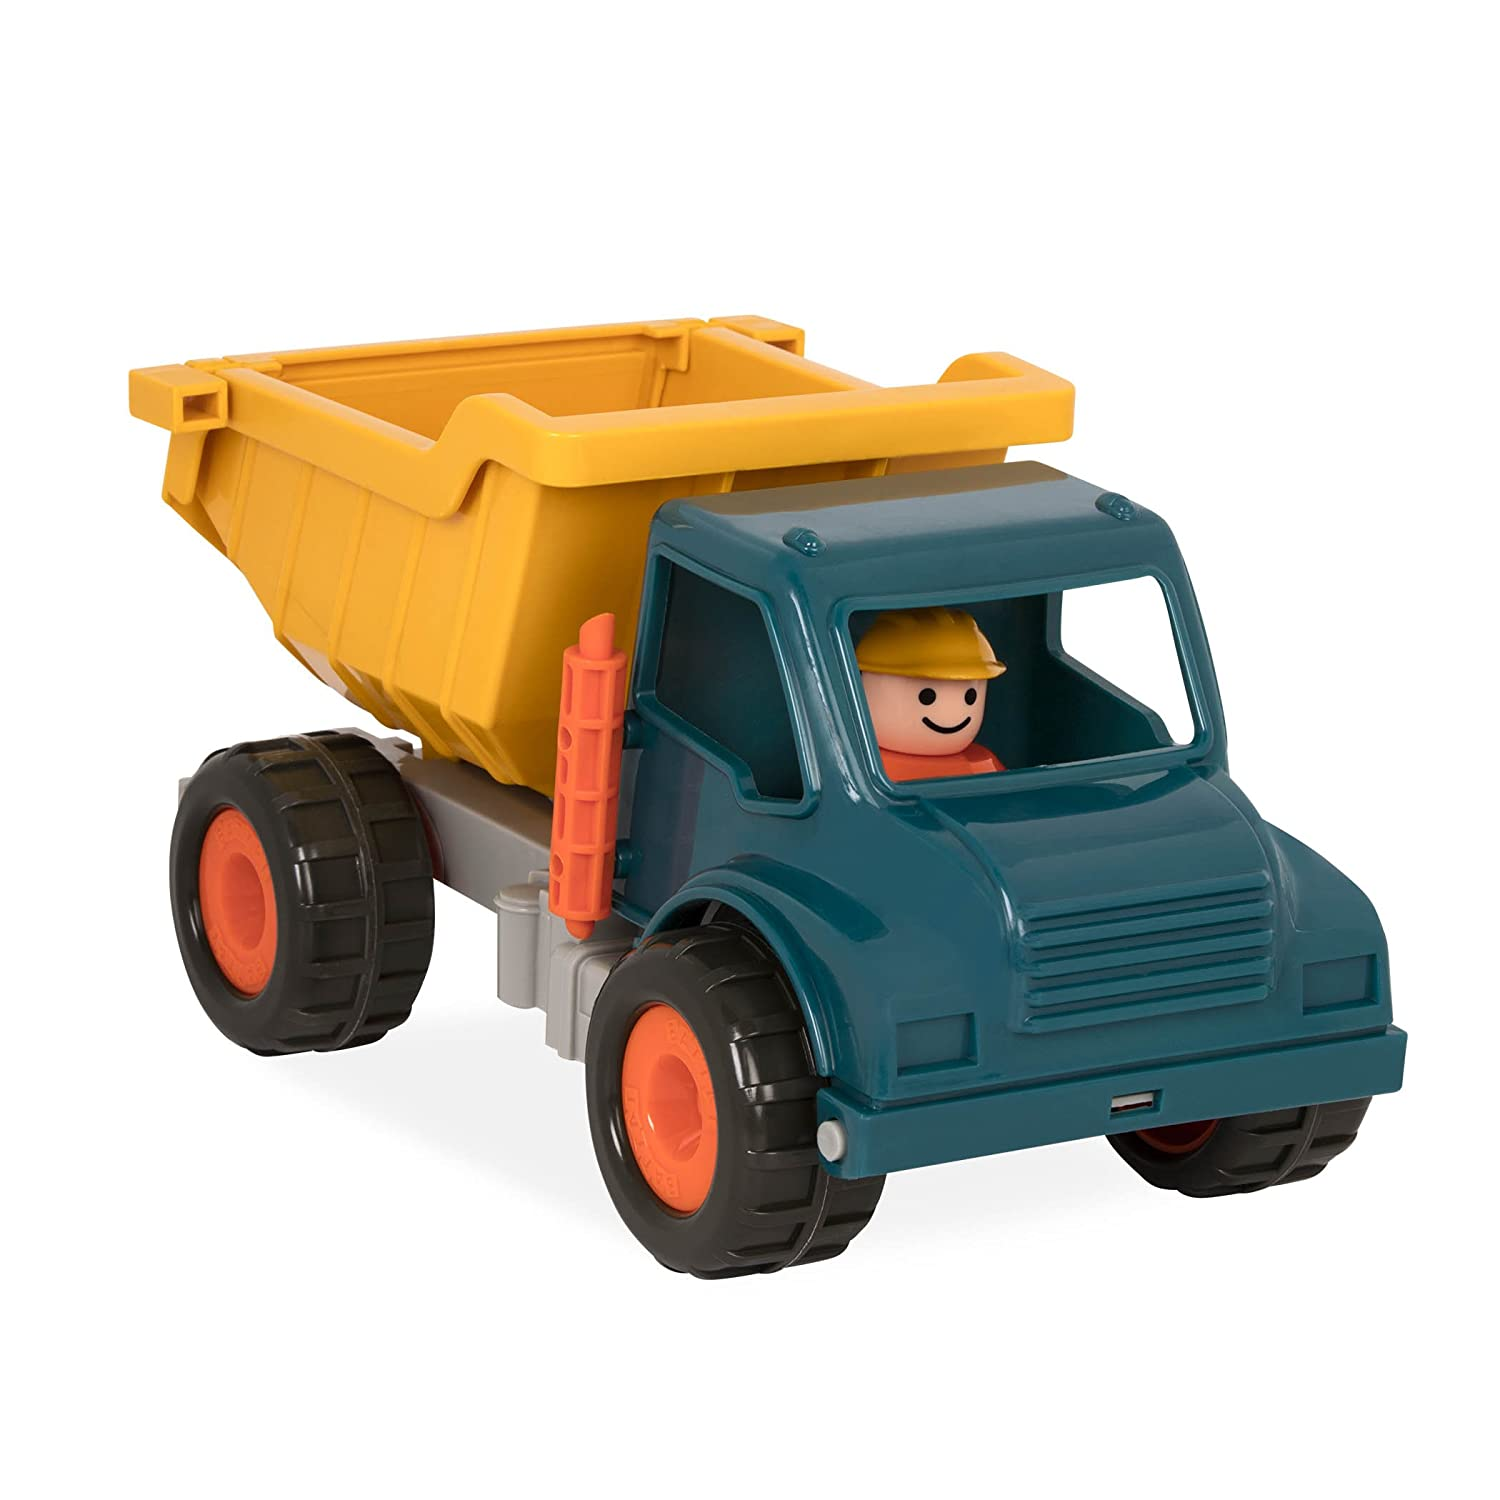 Battat -Dump Truck with Working Movable Parts and 1 Driver – Construction Vehicle Toy Trucks for Toddlers 18m+